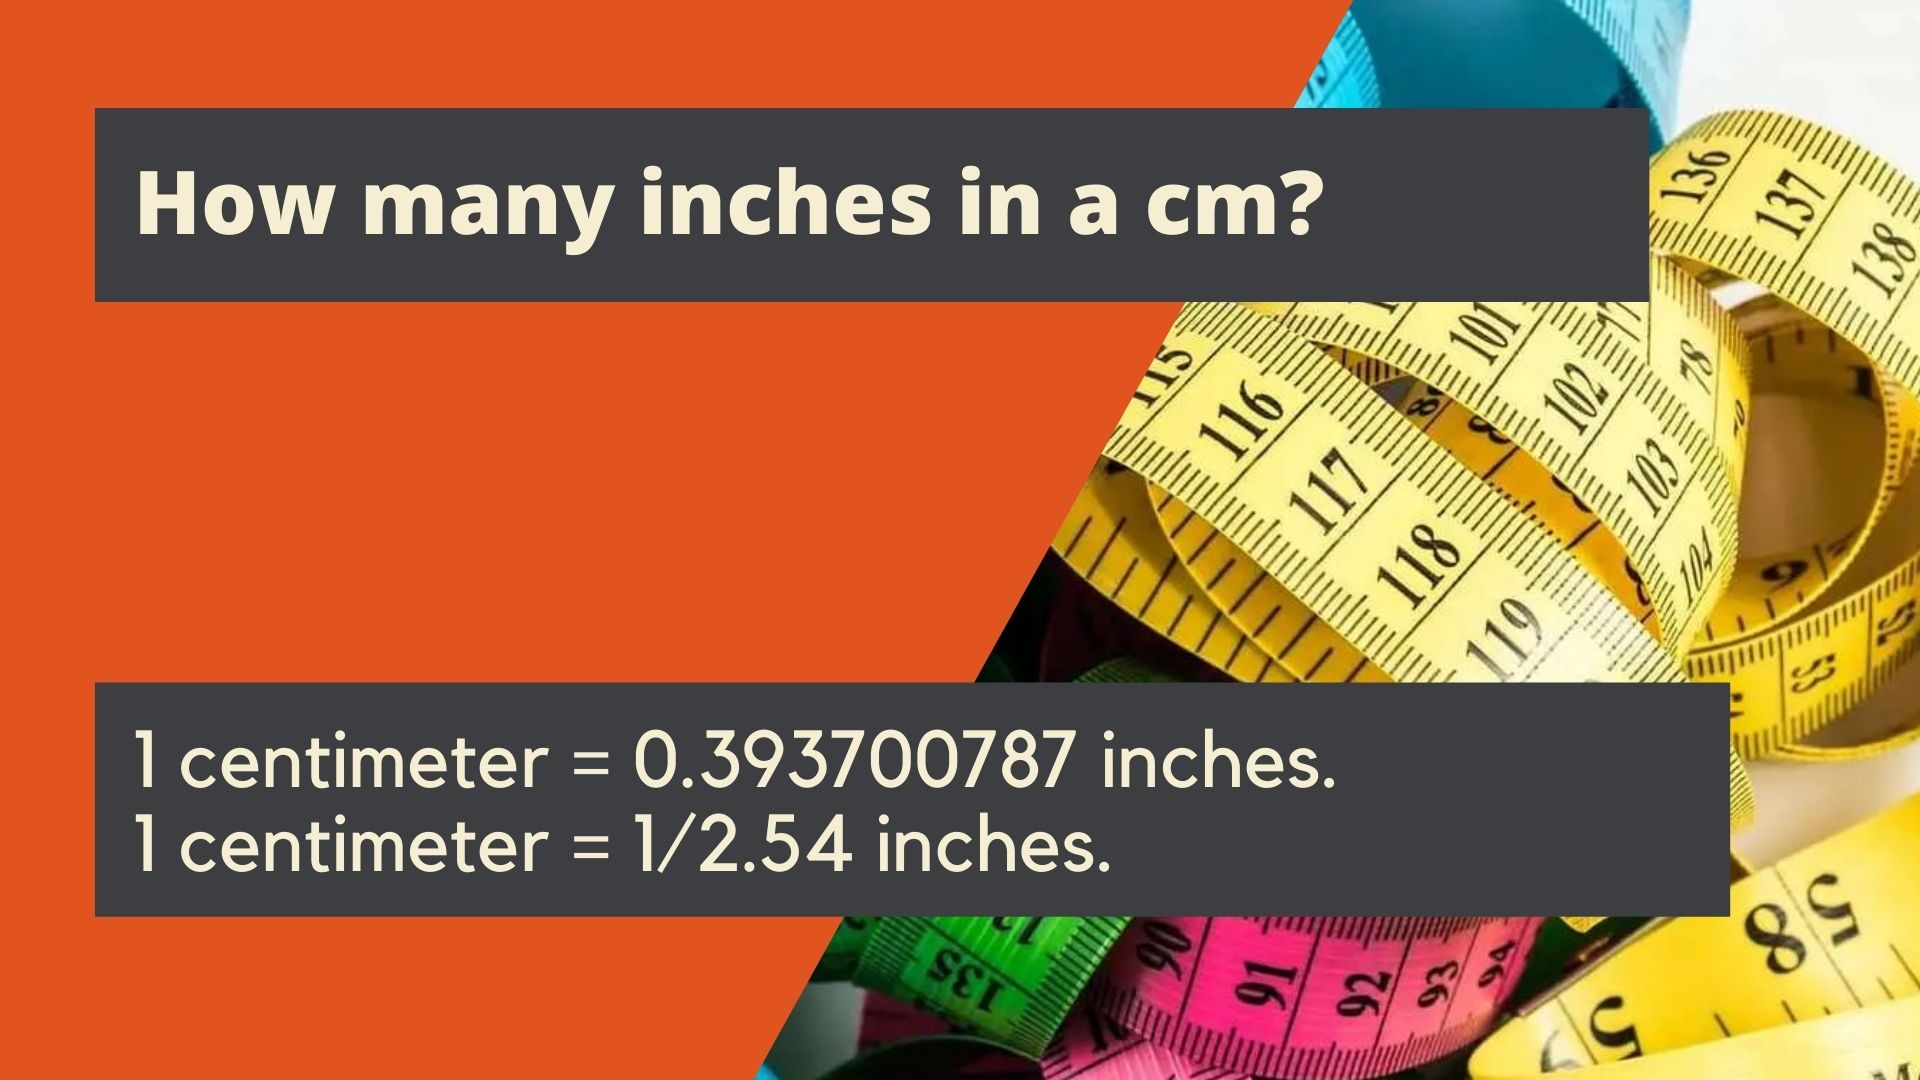 How many inches in a cm?